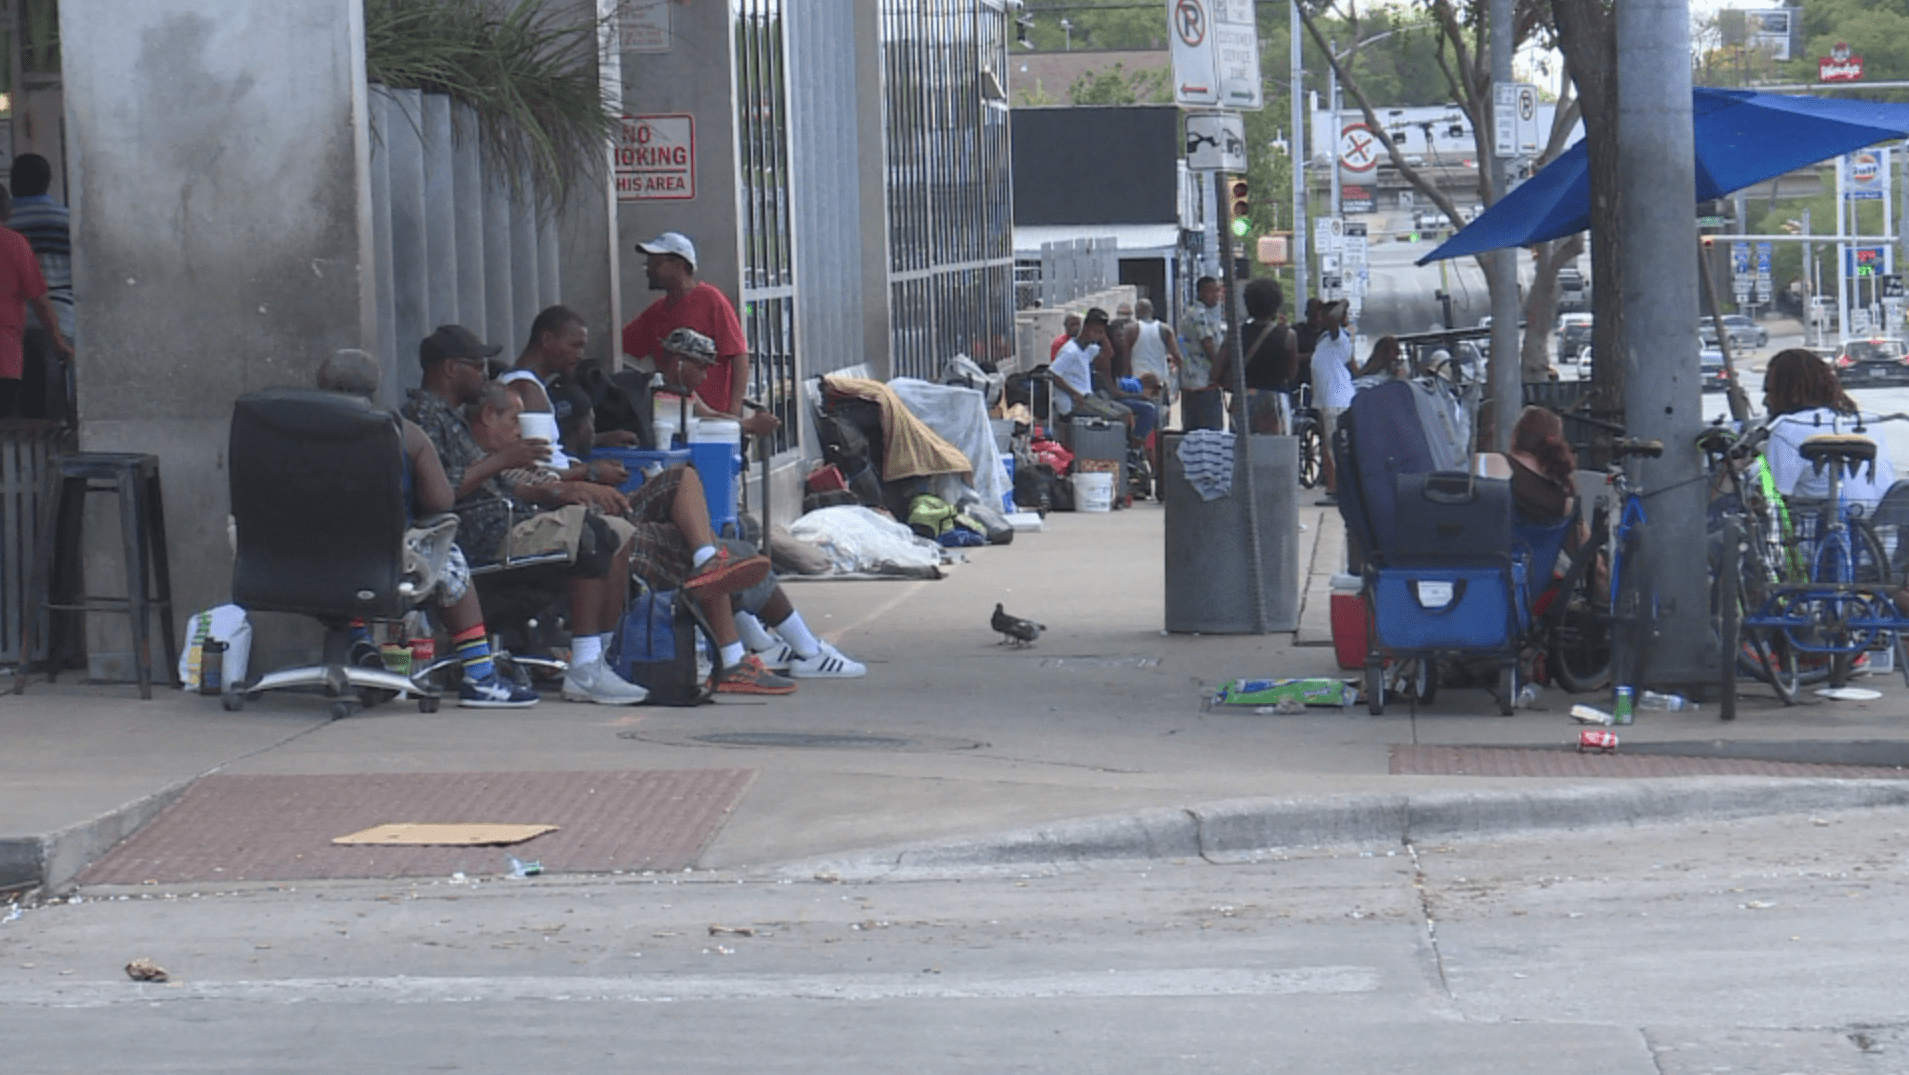 Starting Monday, homeless people will be able to camp on